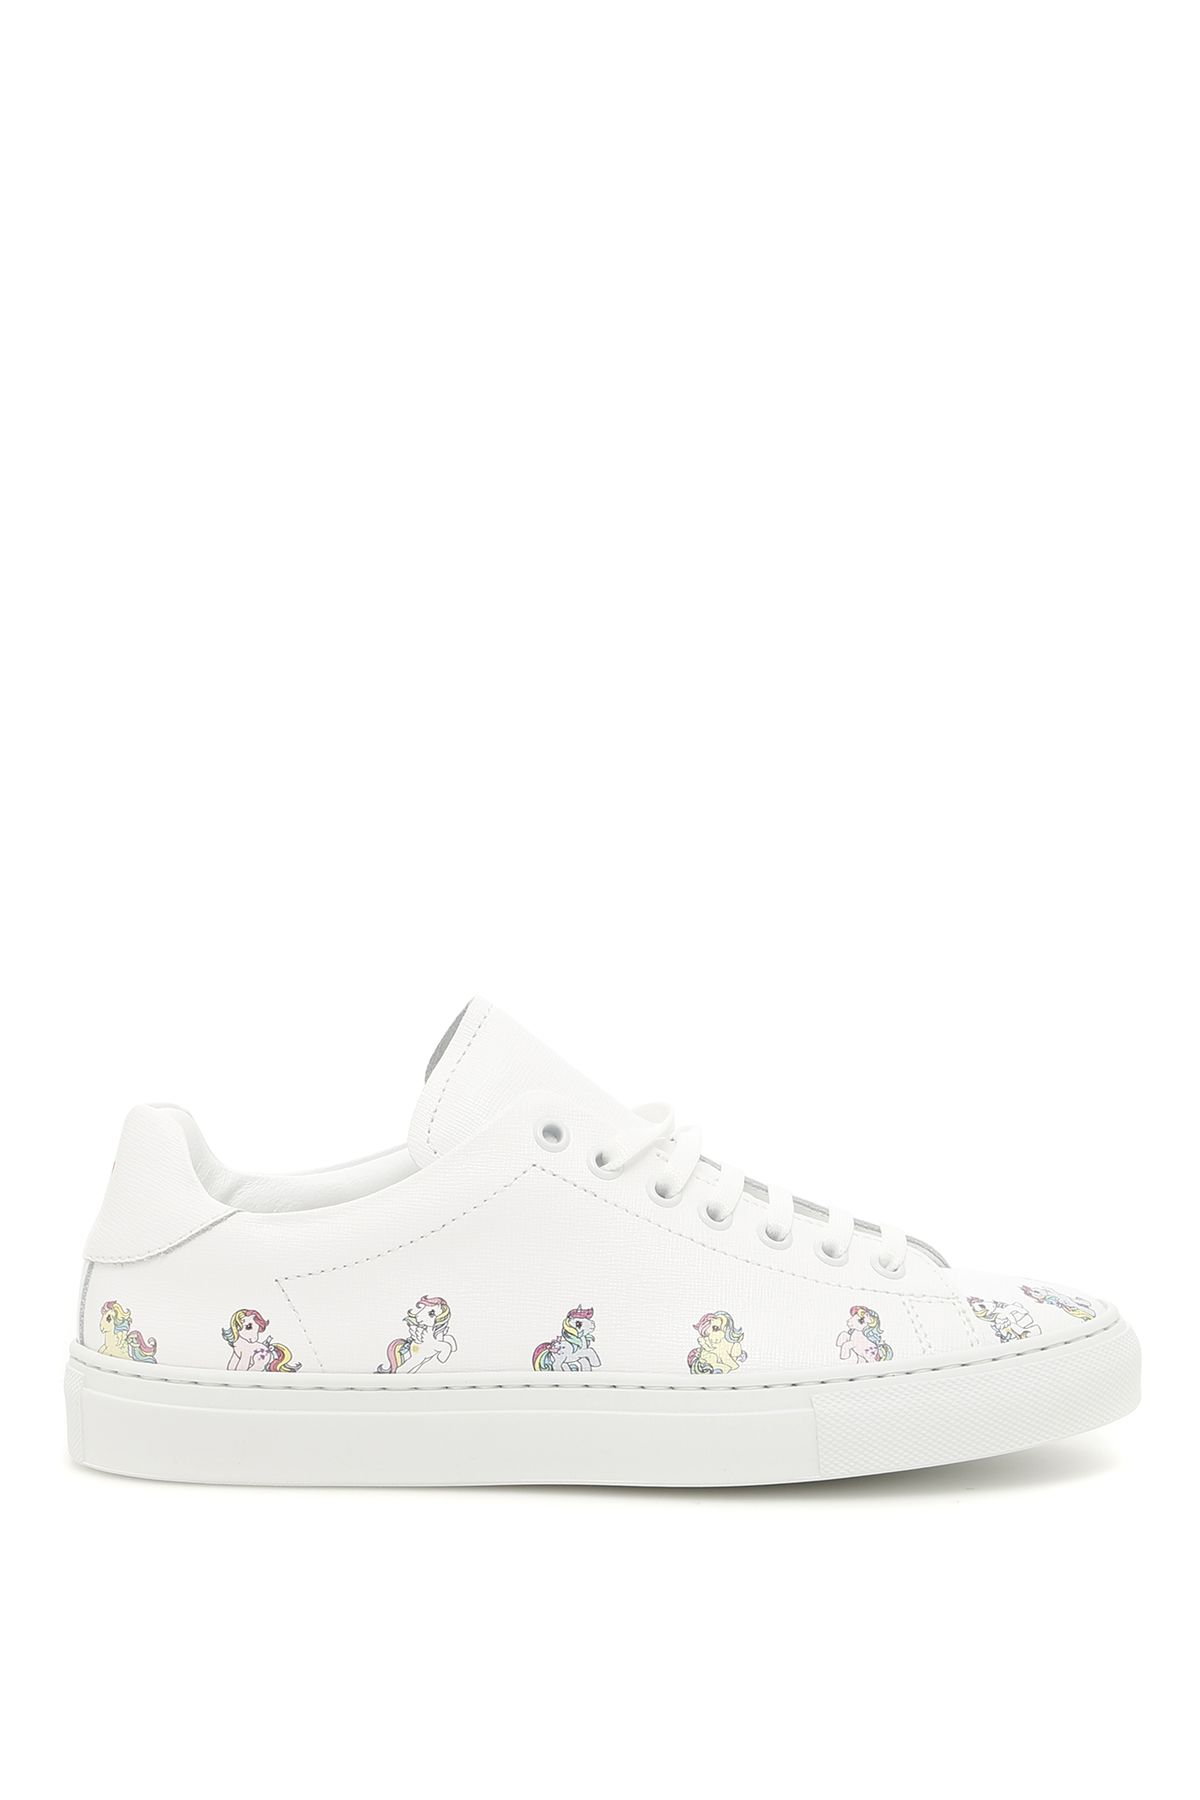 Joshua Sanders Simple Pony Leather Sneakers